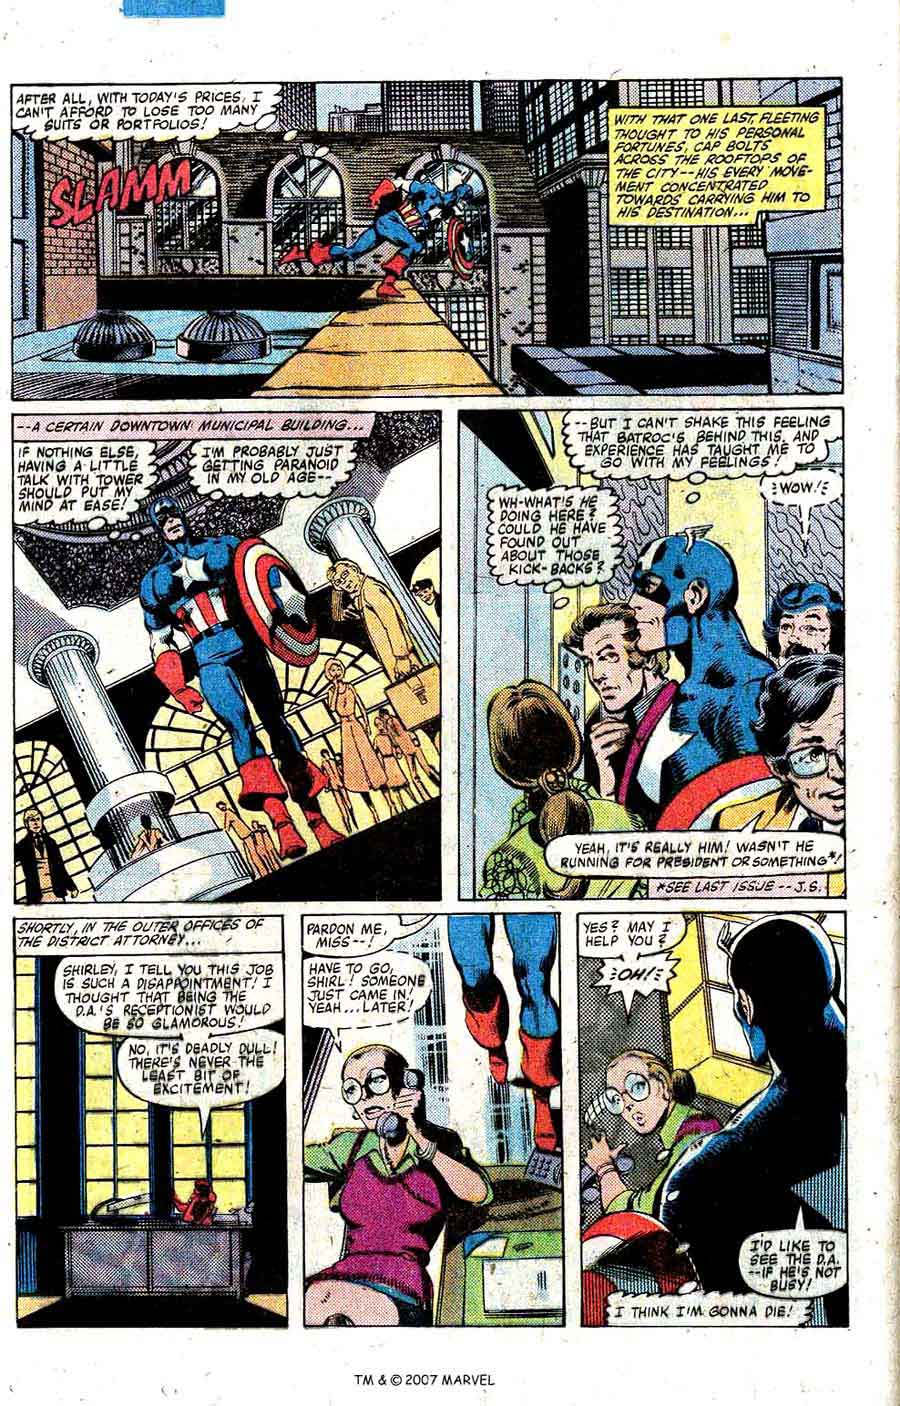 Captain America #251 marvel 1980s bronze age comic book page art by John Byrne